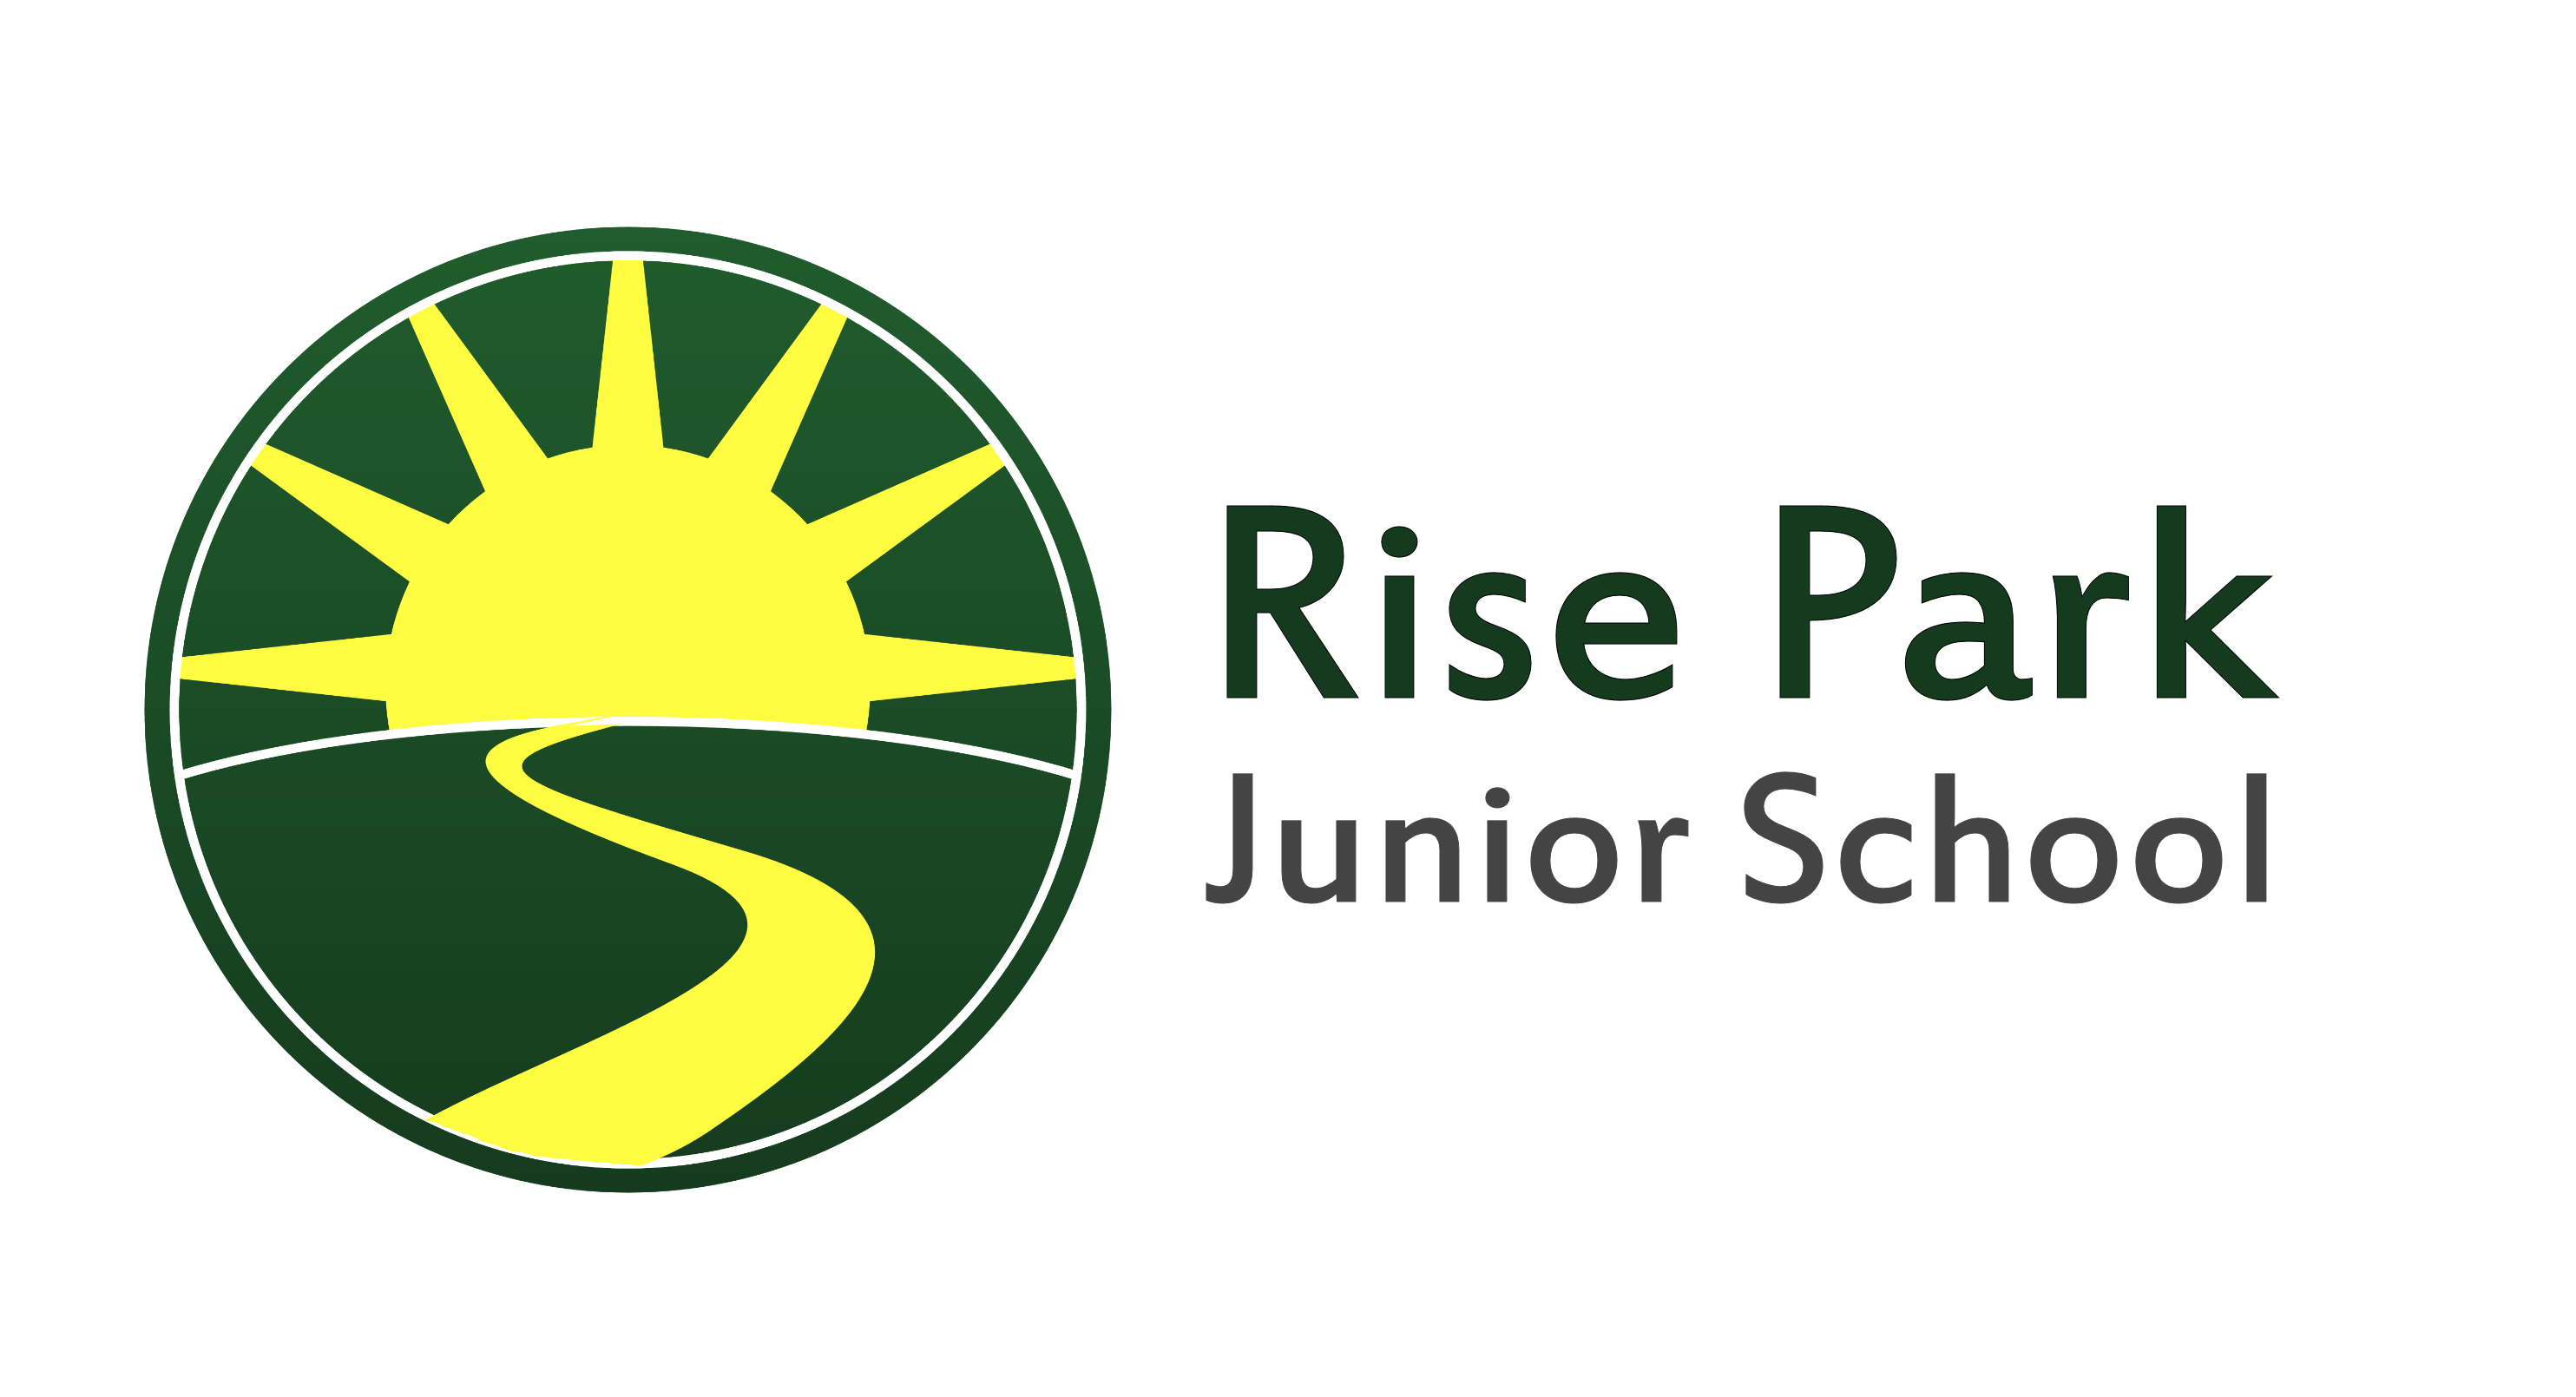 Rise Park Junior School